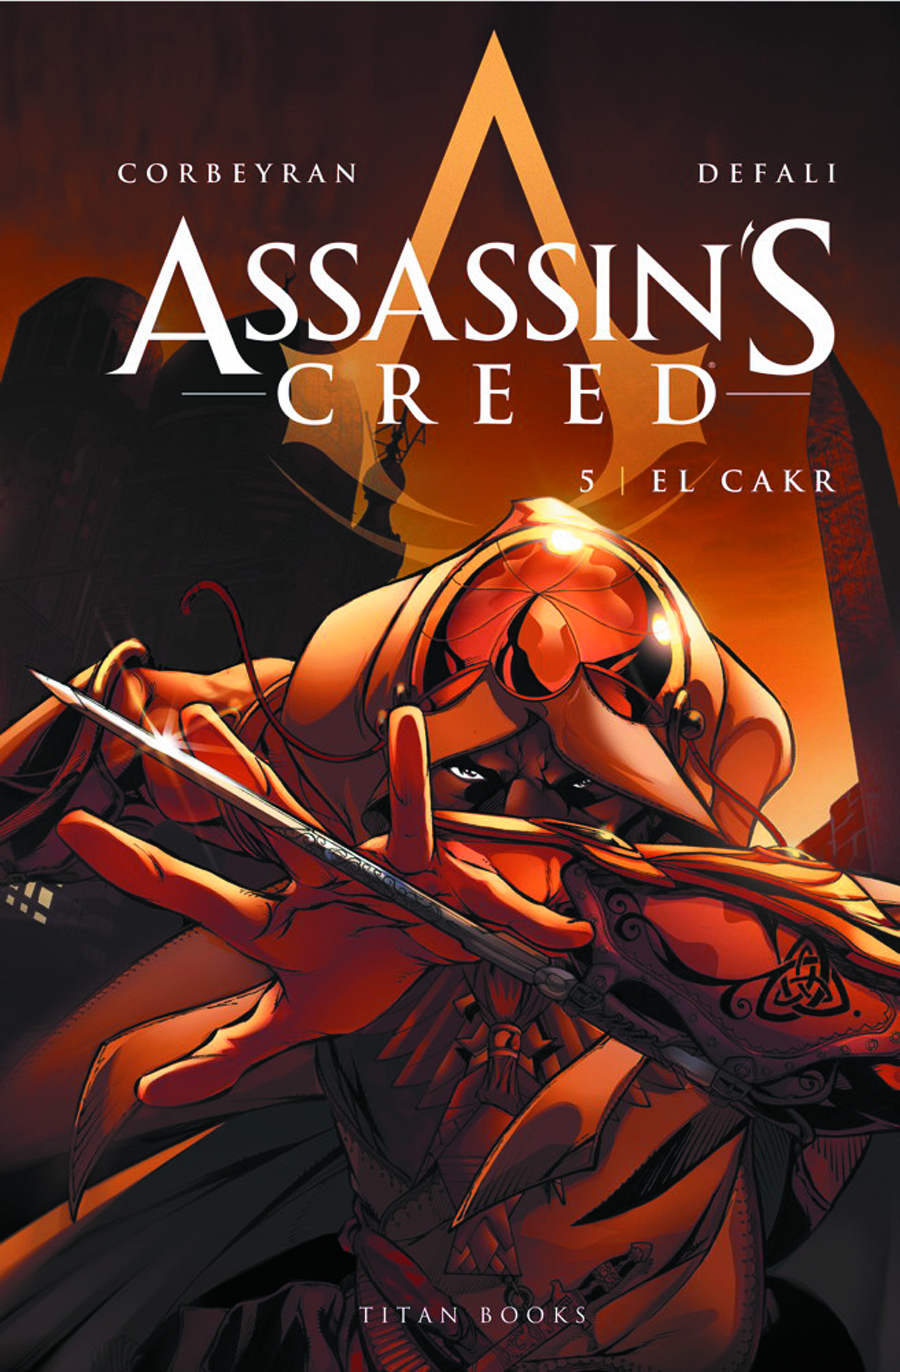 ASSASSINS CREED GN VOL 05 EL CAKR